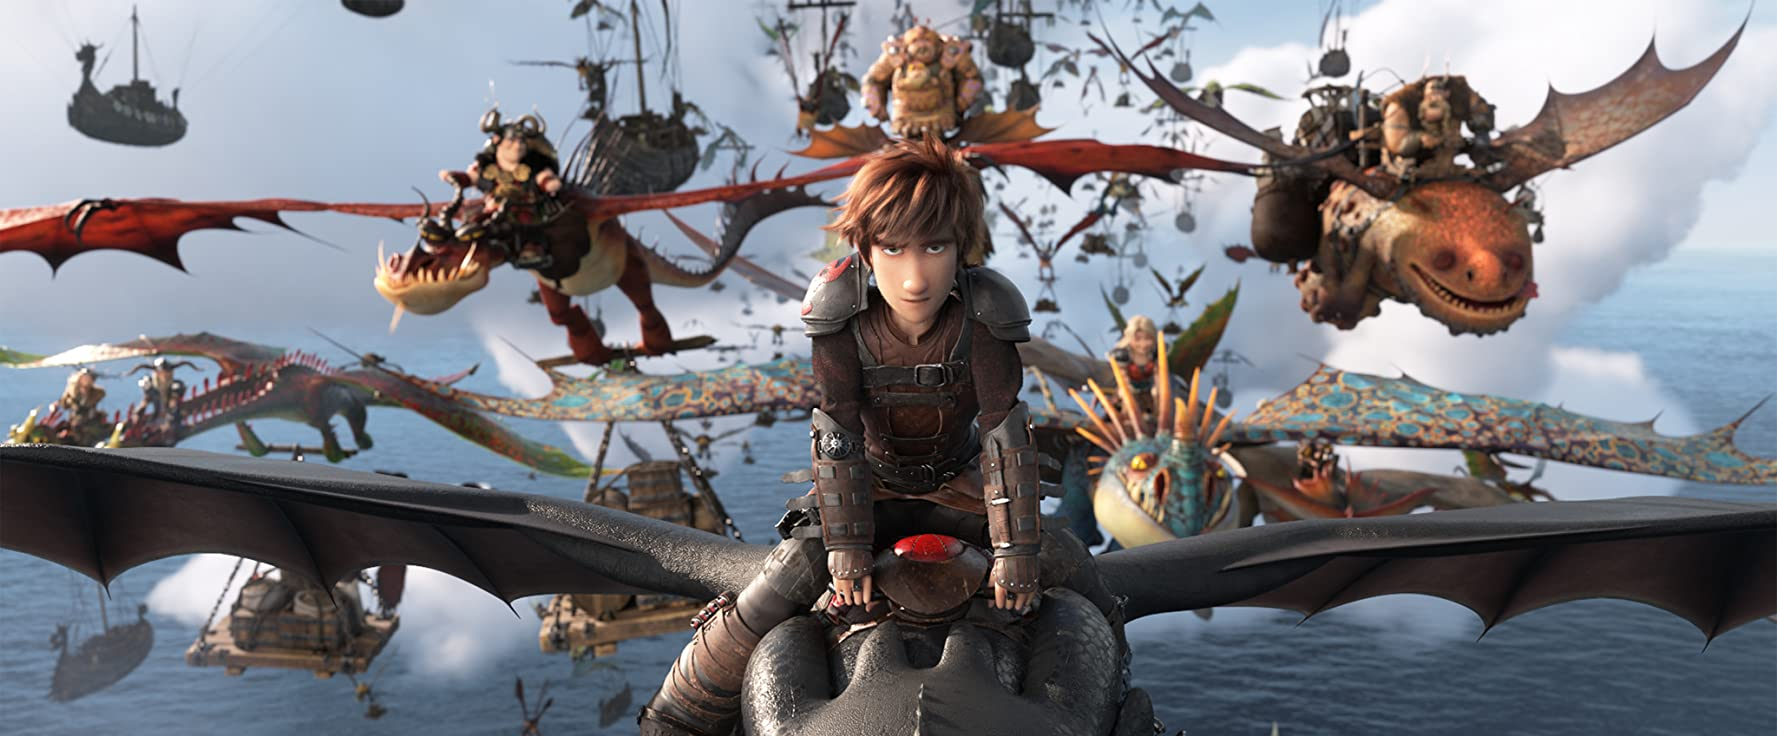 How to Train Your Dragon: The Hidden World / DreamWorks Animation & Universal Pictures. © 2019. All rights reserved.